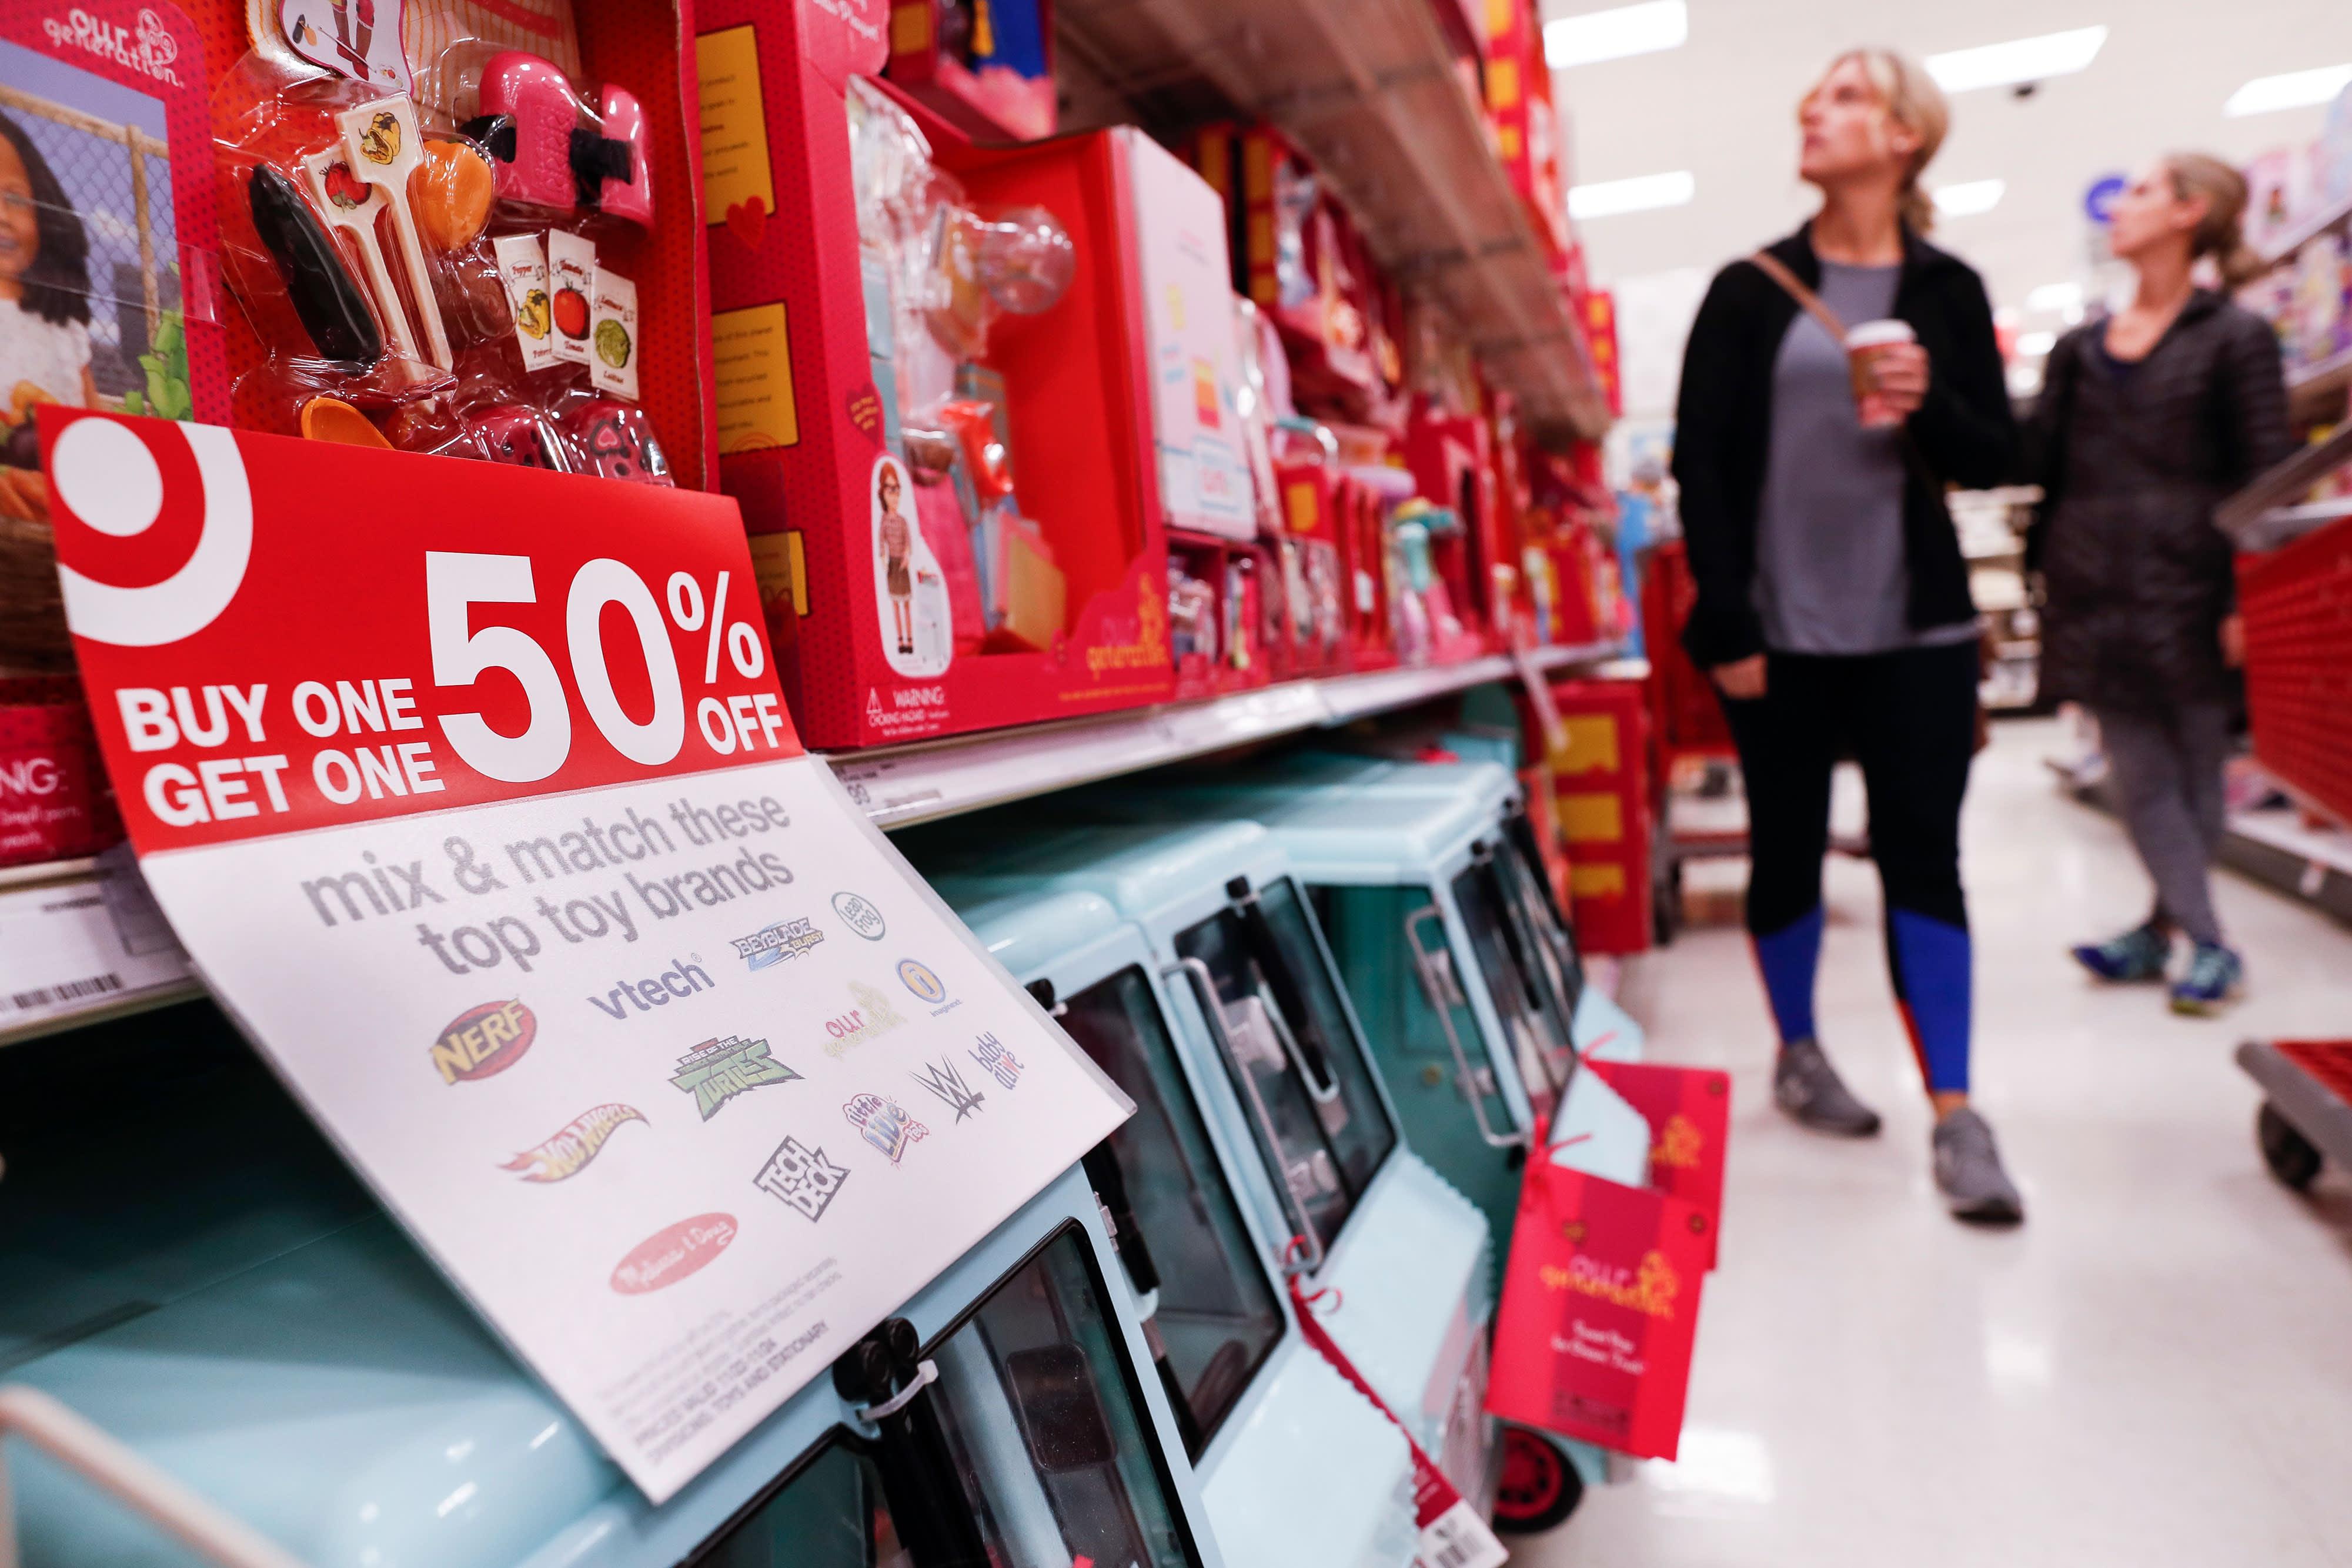 If you offer good value in retail, you're winning. Everyone else is in trouble